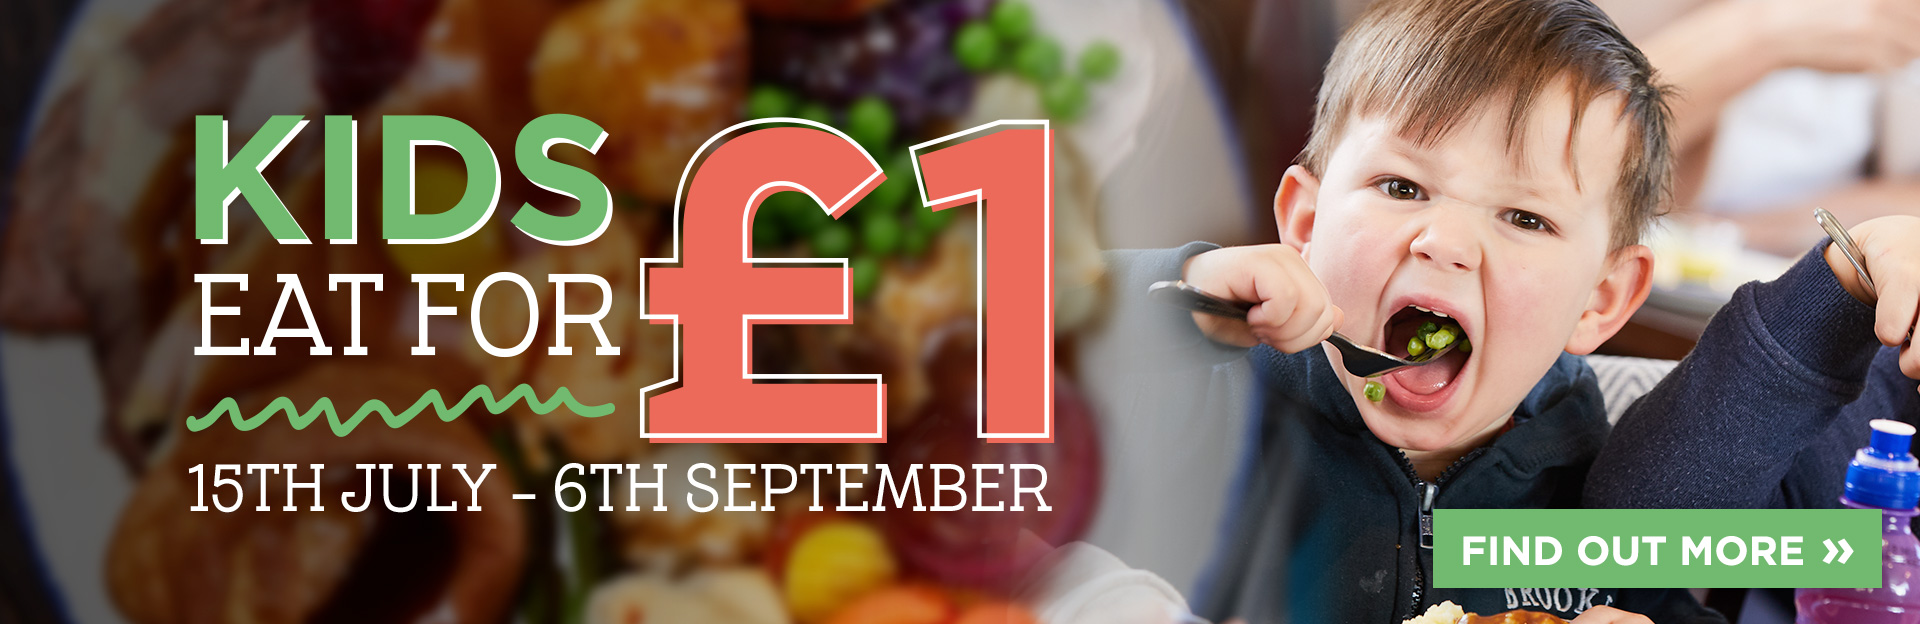 Kids Eat for £1 at De Rodes Arms